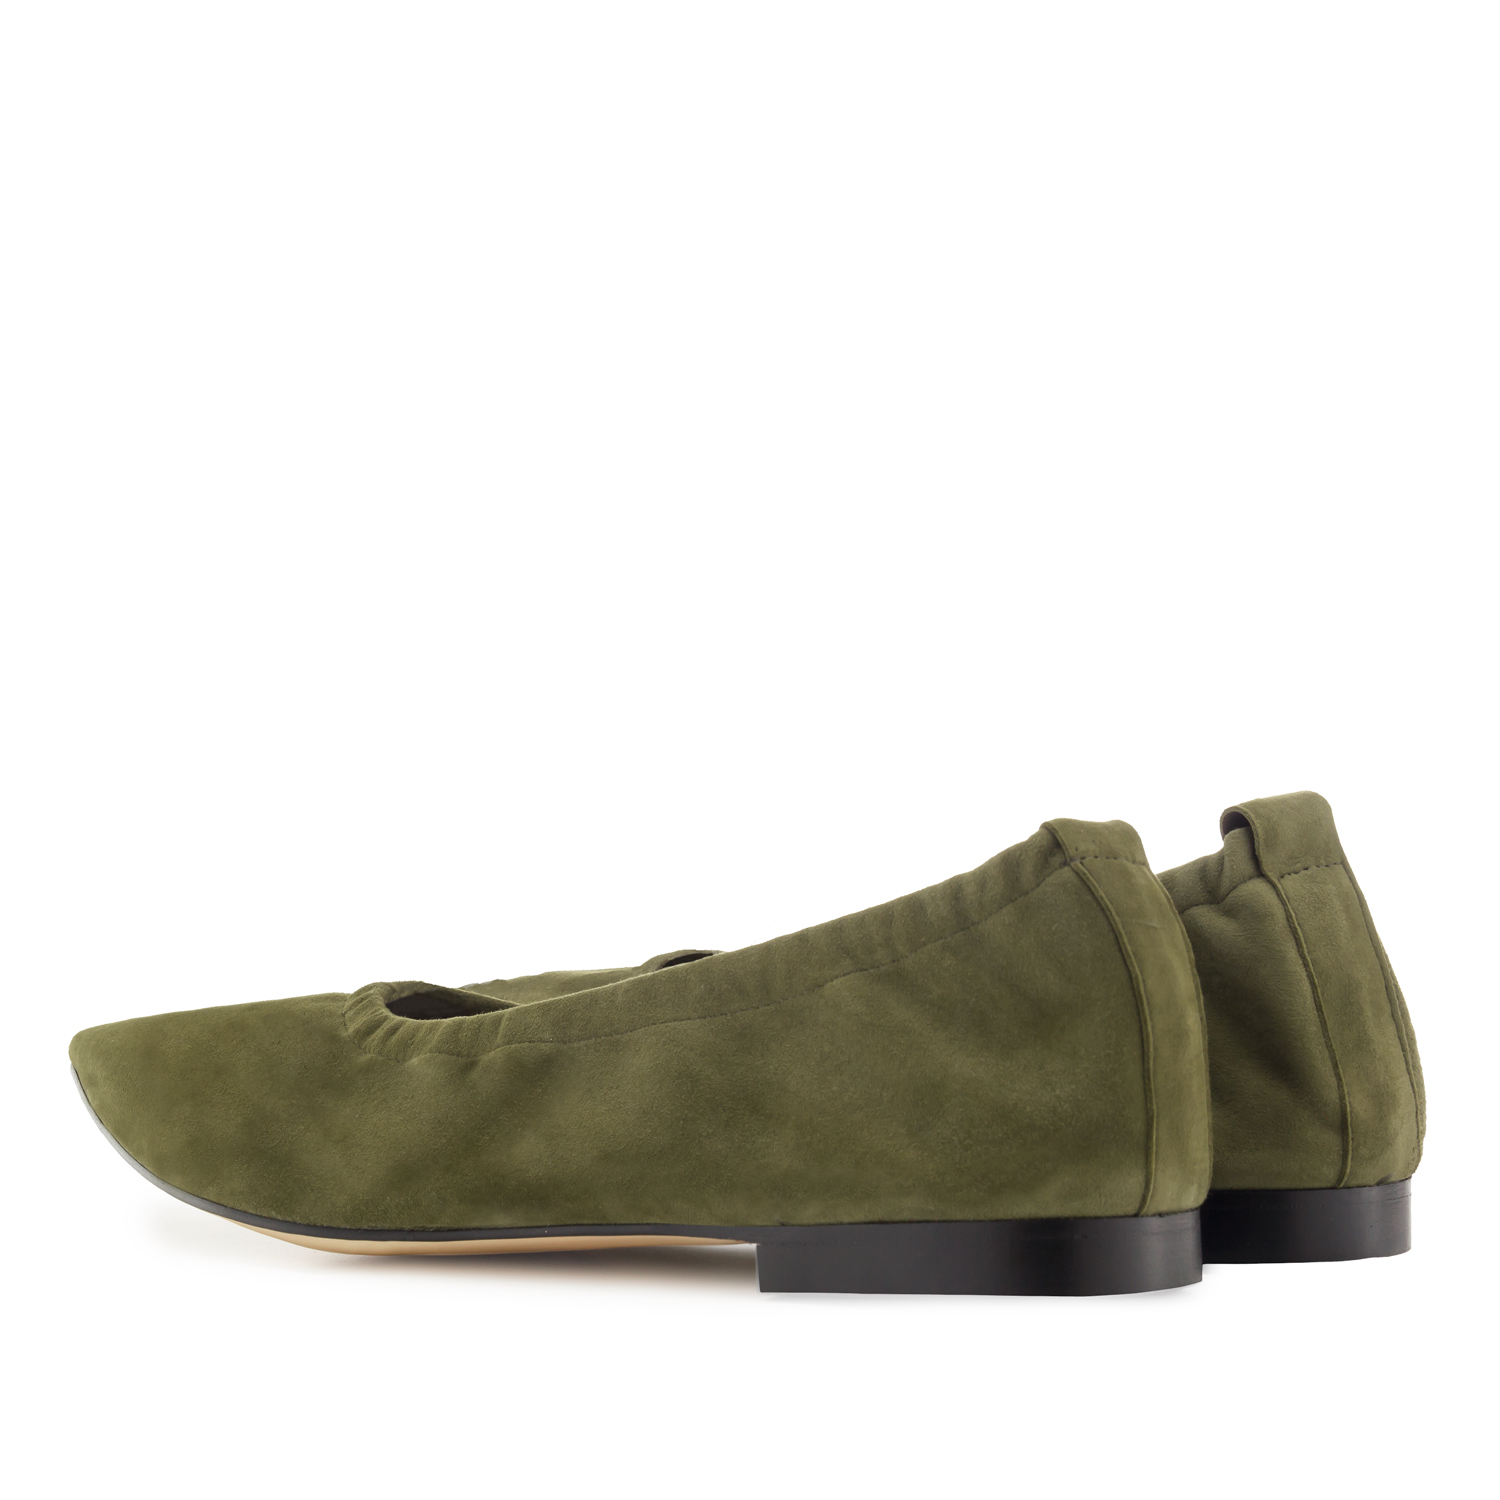 Elasticated Ballet Flats in Olive Green Suede Leather